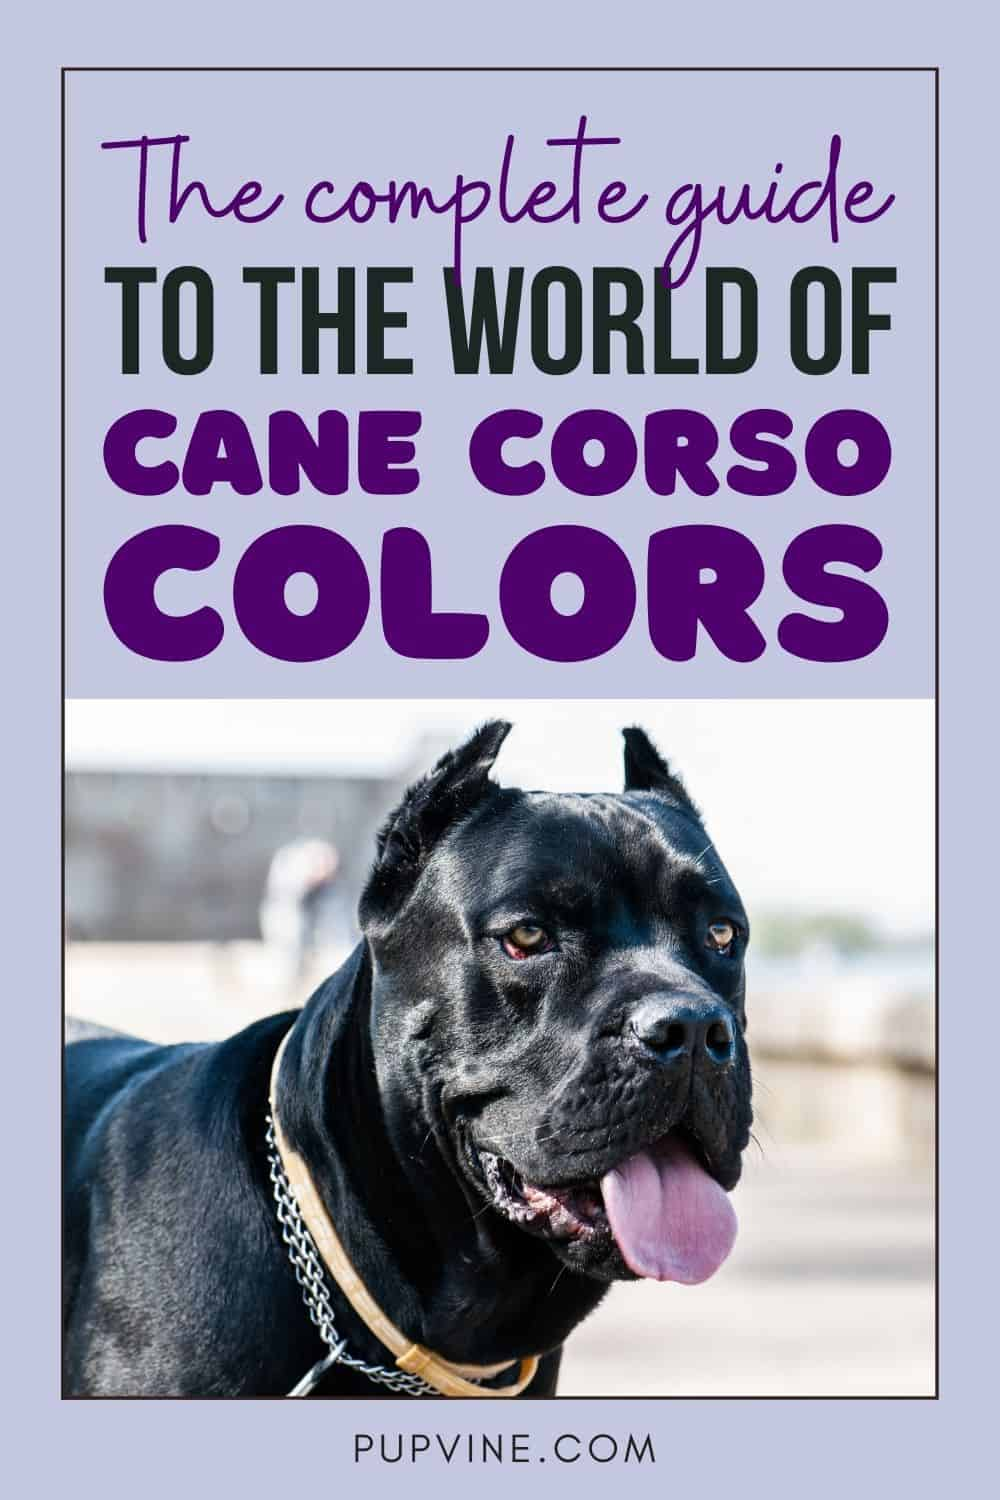 The Complete Guide To The World Of Cane Corso Colors